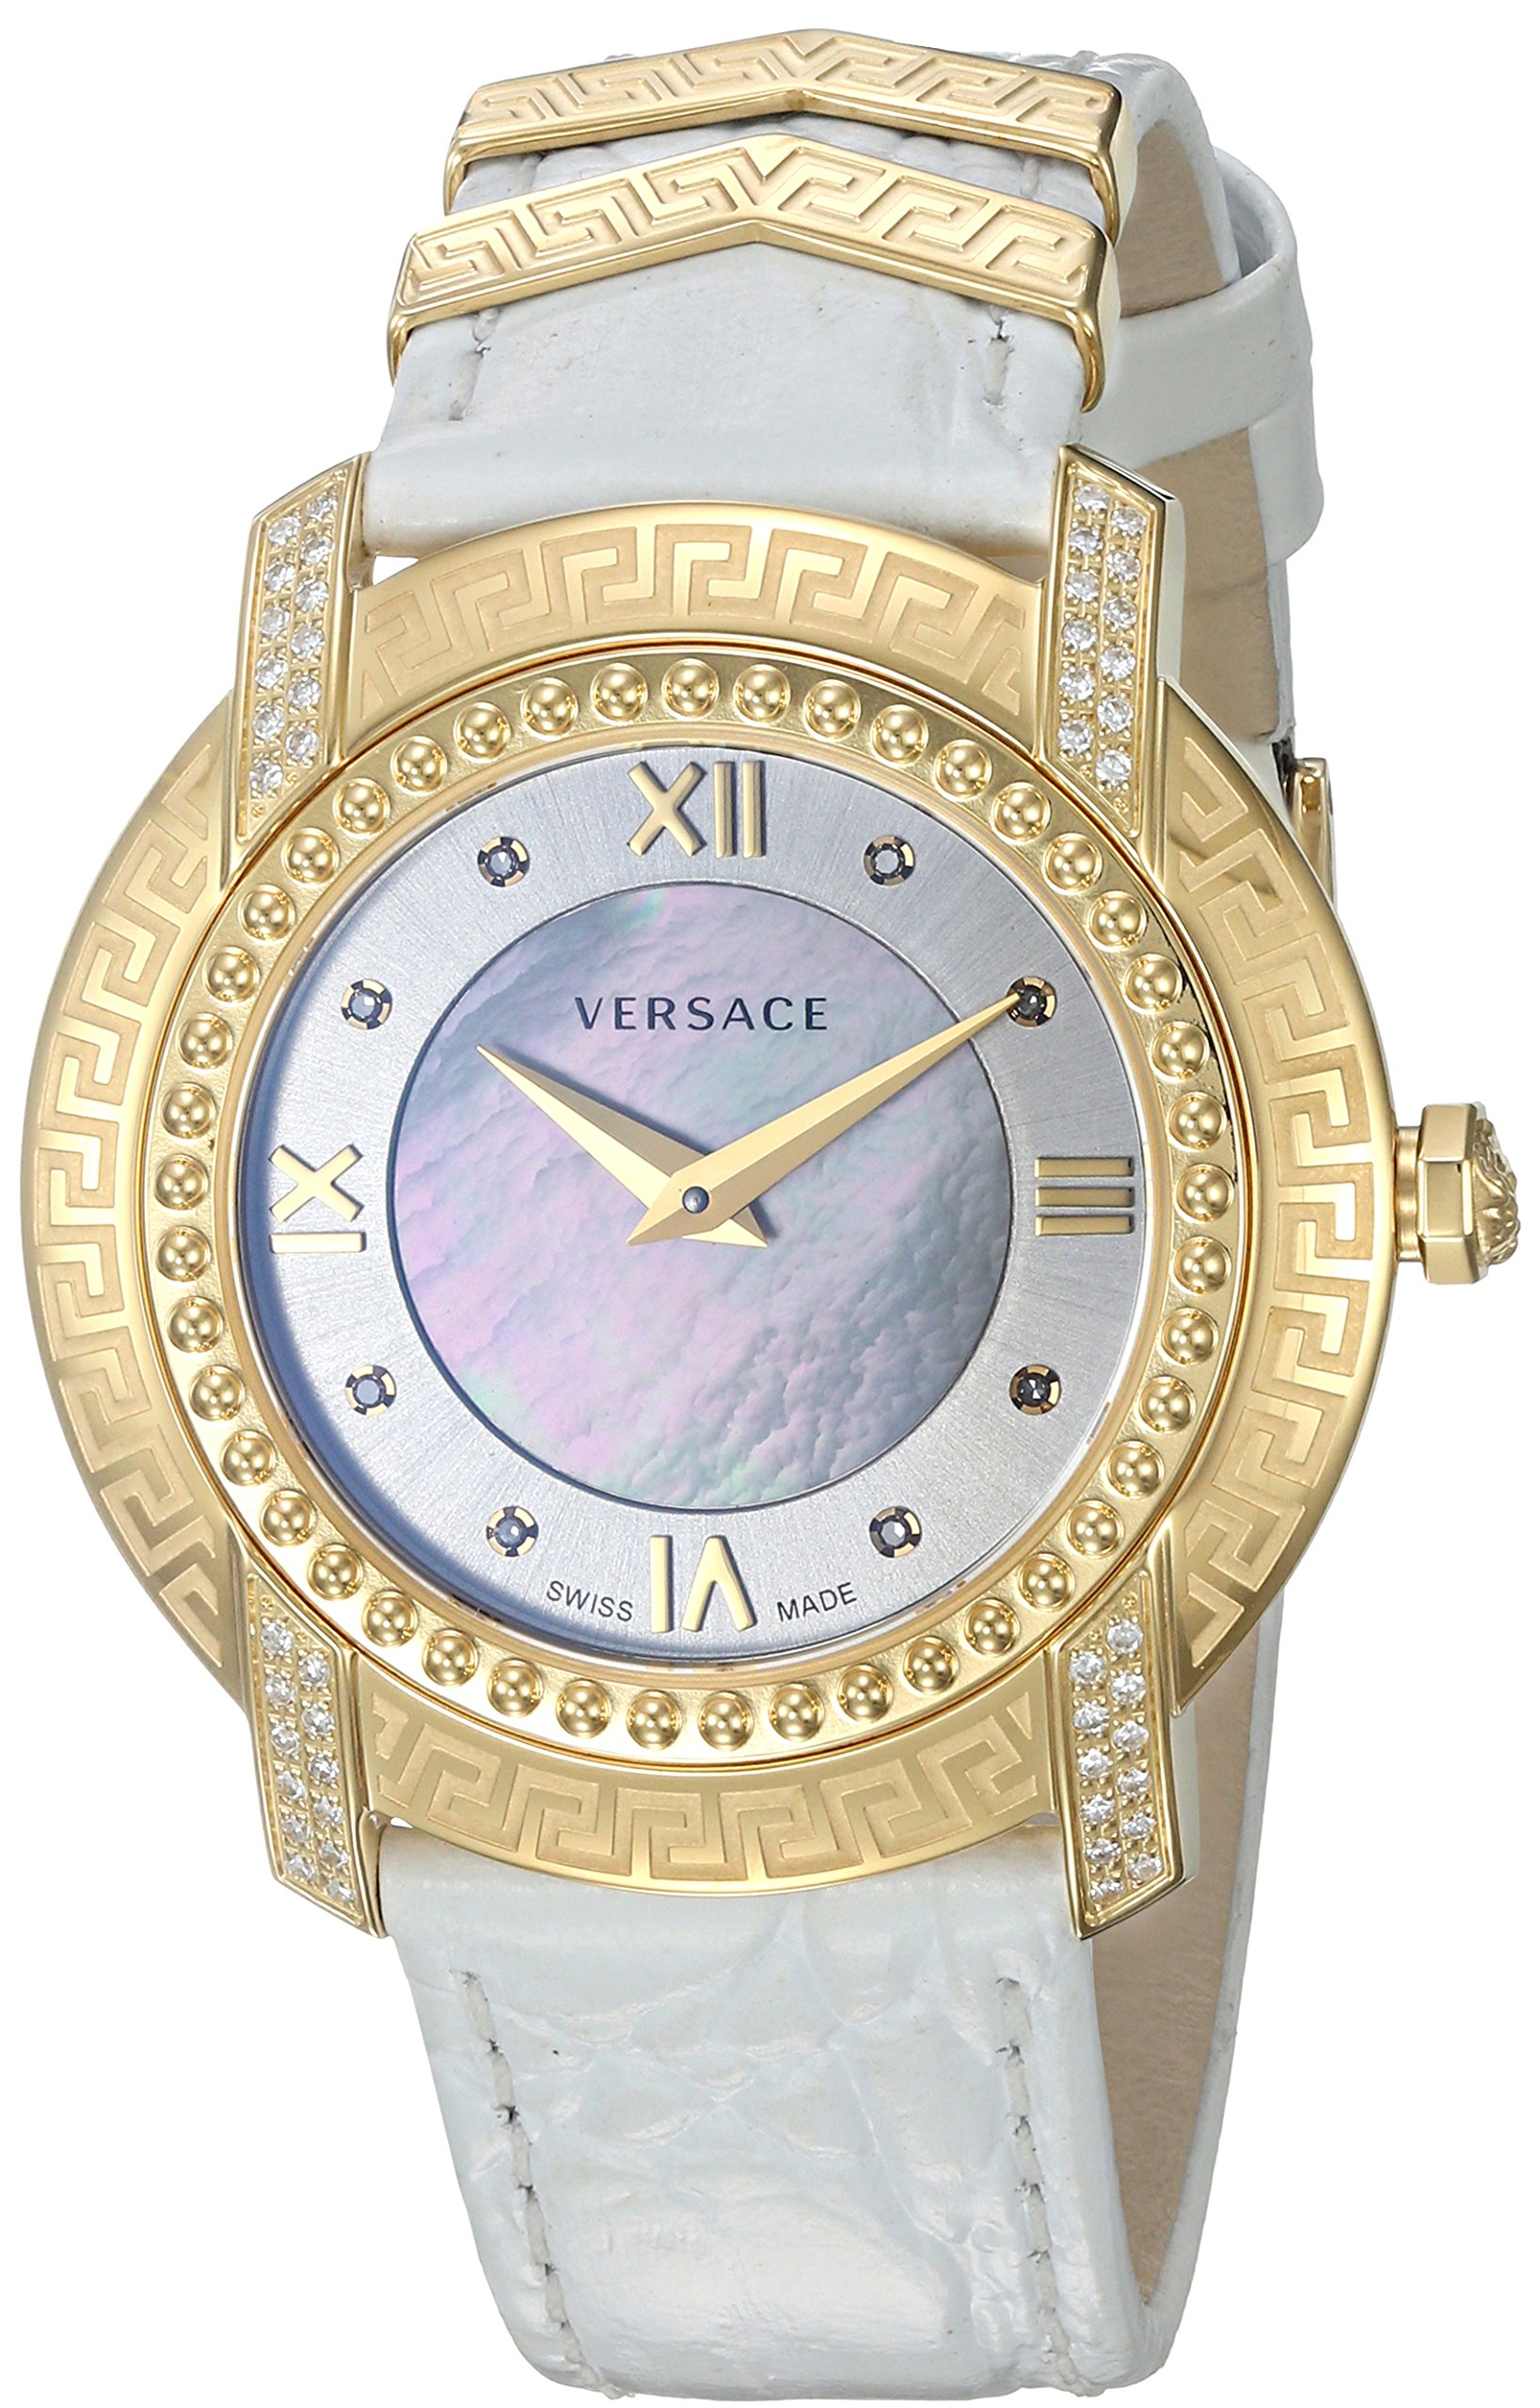 Versace Women's 'DV-25' Swiss Quartz Stainless Steel and Leather Casual Watch, Color:White (Model: VAM060016) by Versace (Image #1)